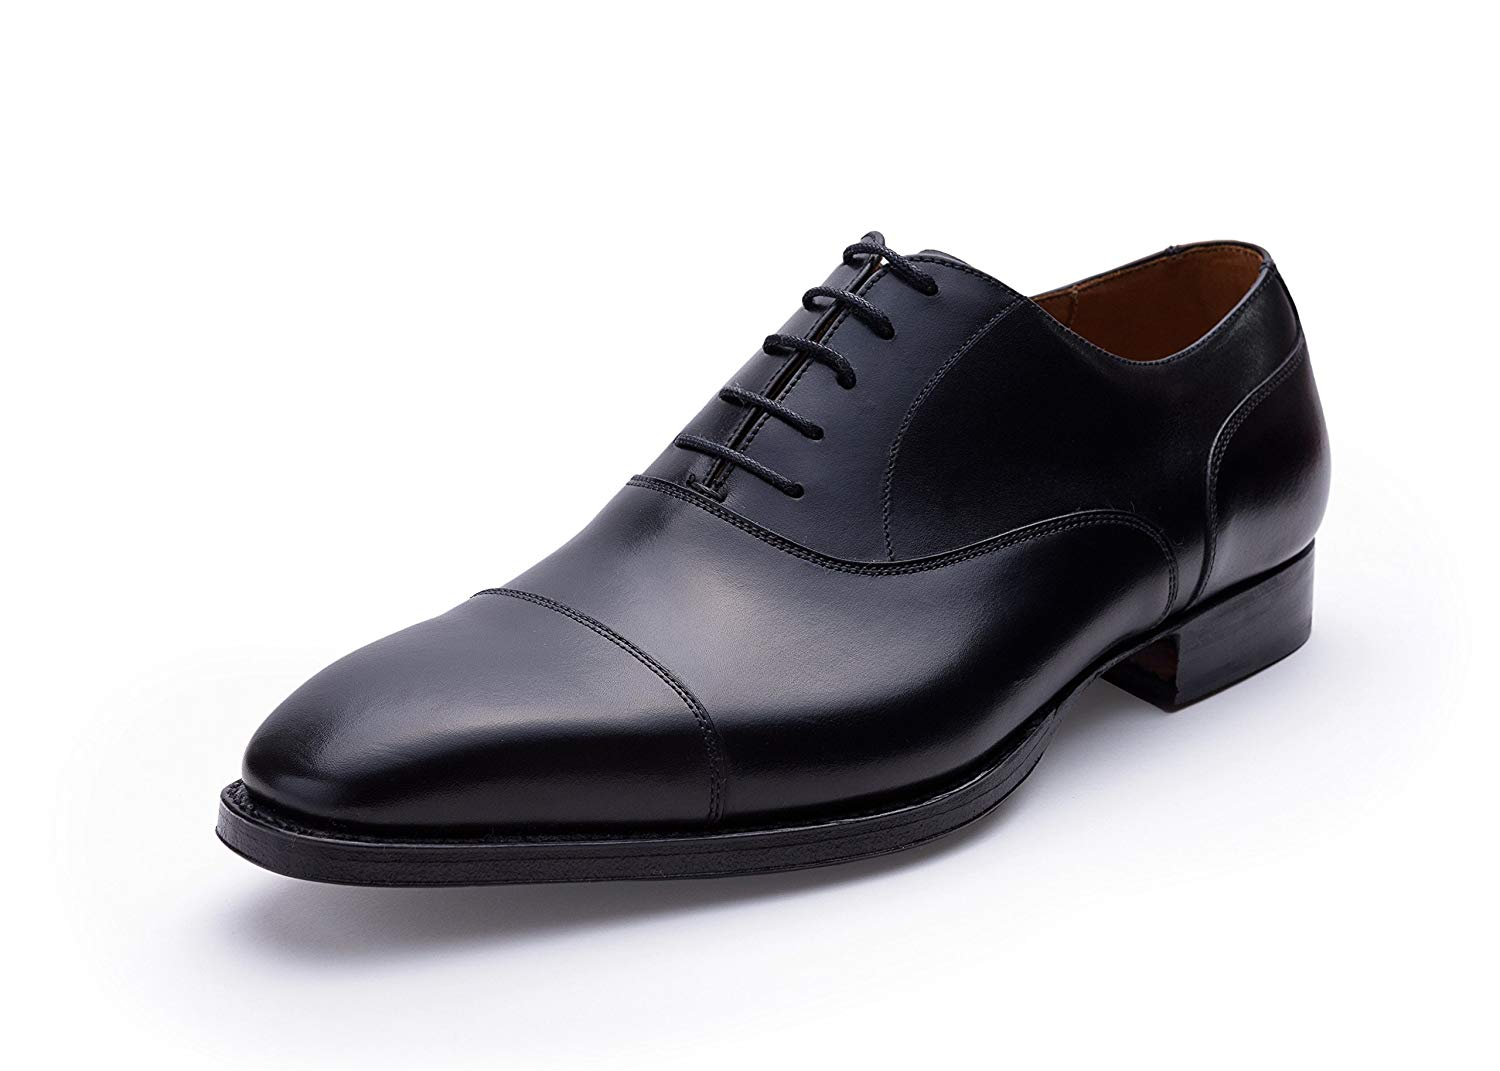 bc89f0eb087c Get Quotations · Andrew Lock Handgrade Black Captoe Oxford Goodyear Welted  Shoes